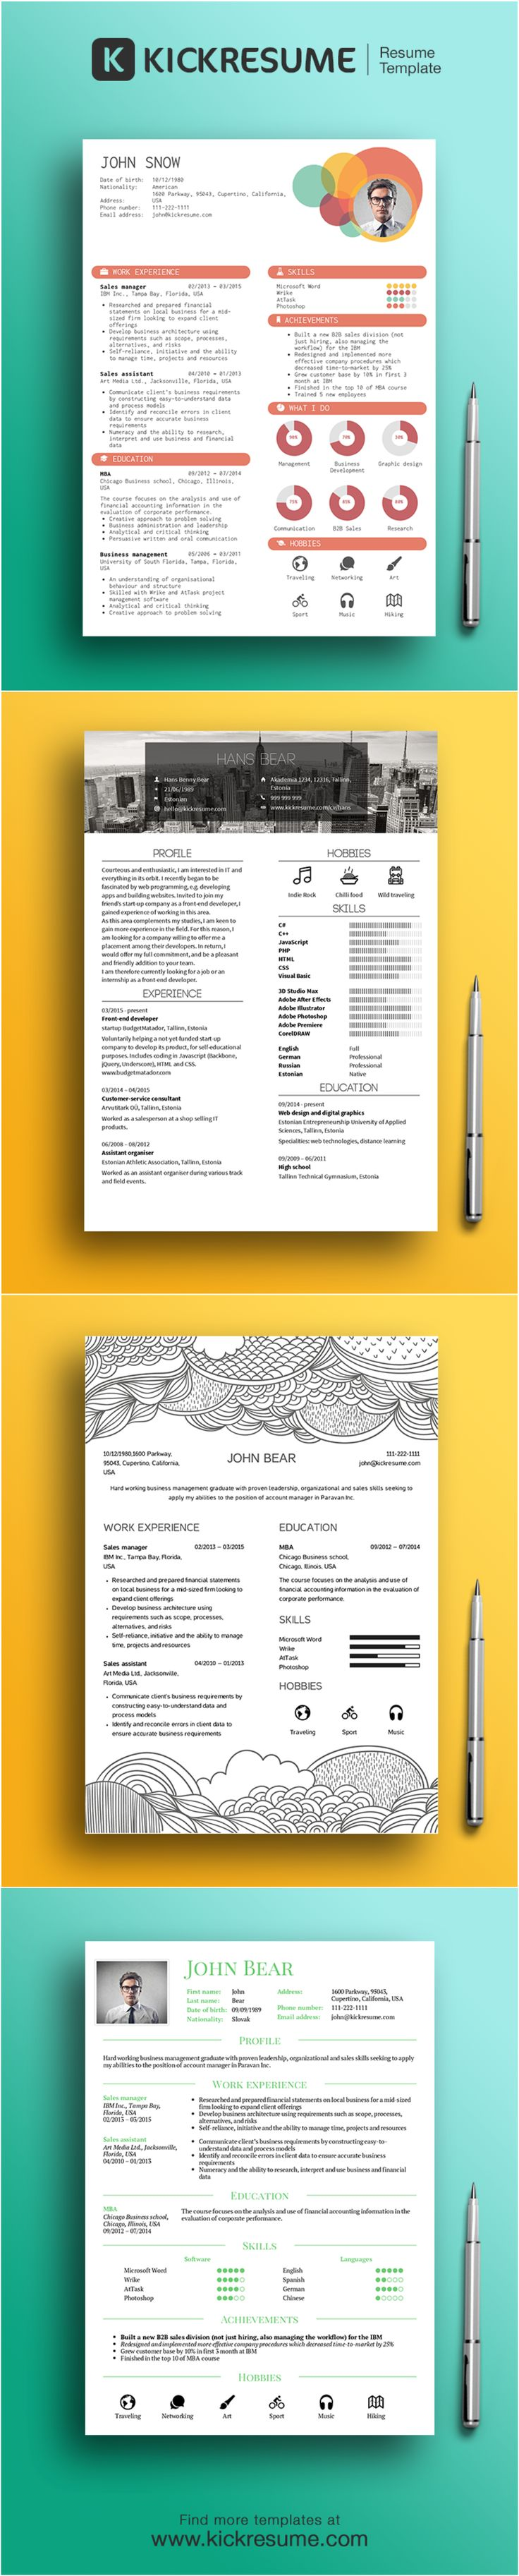 beautiful infographic resume templates by wwwkickresumecom create same resume in 15 minutes. Resume Example. Resume CV Cover Letter